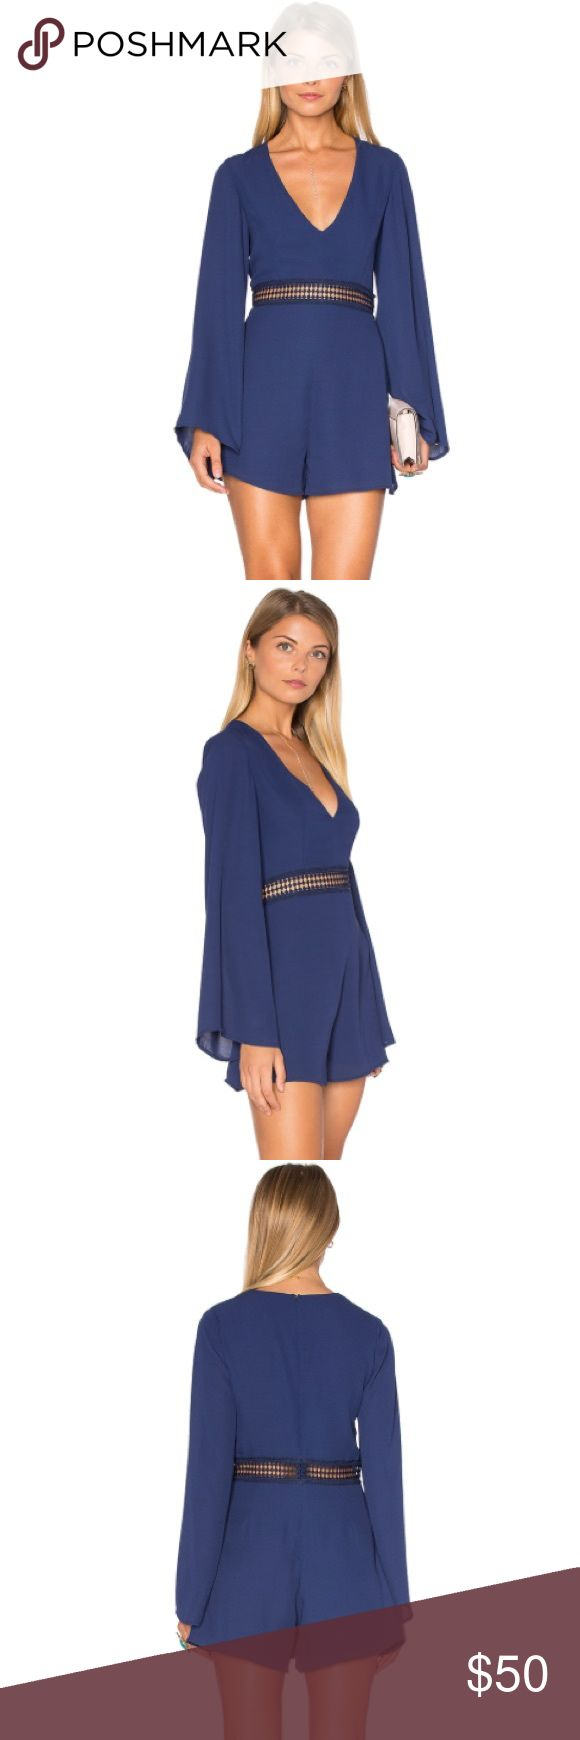 Wyldr Hope So Romper BNWT. Color is navy. Super cute with wedges or strappy heels! tags: for love and lemons, sabo skirt Wyldr Dresses